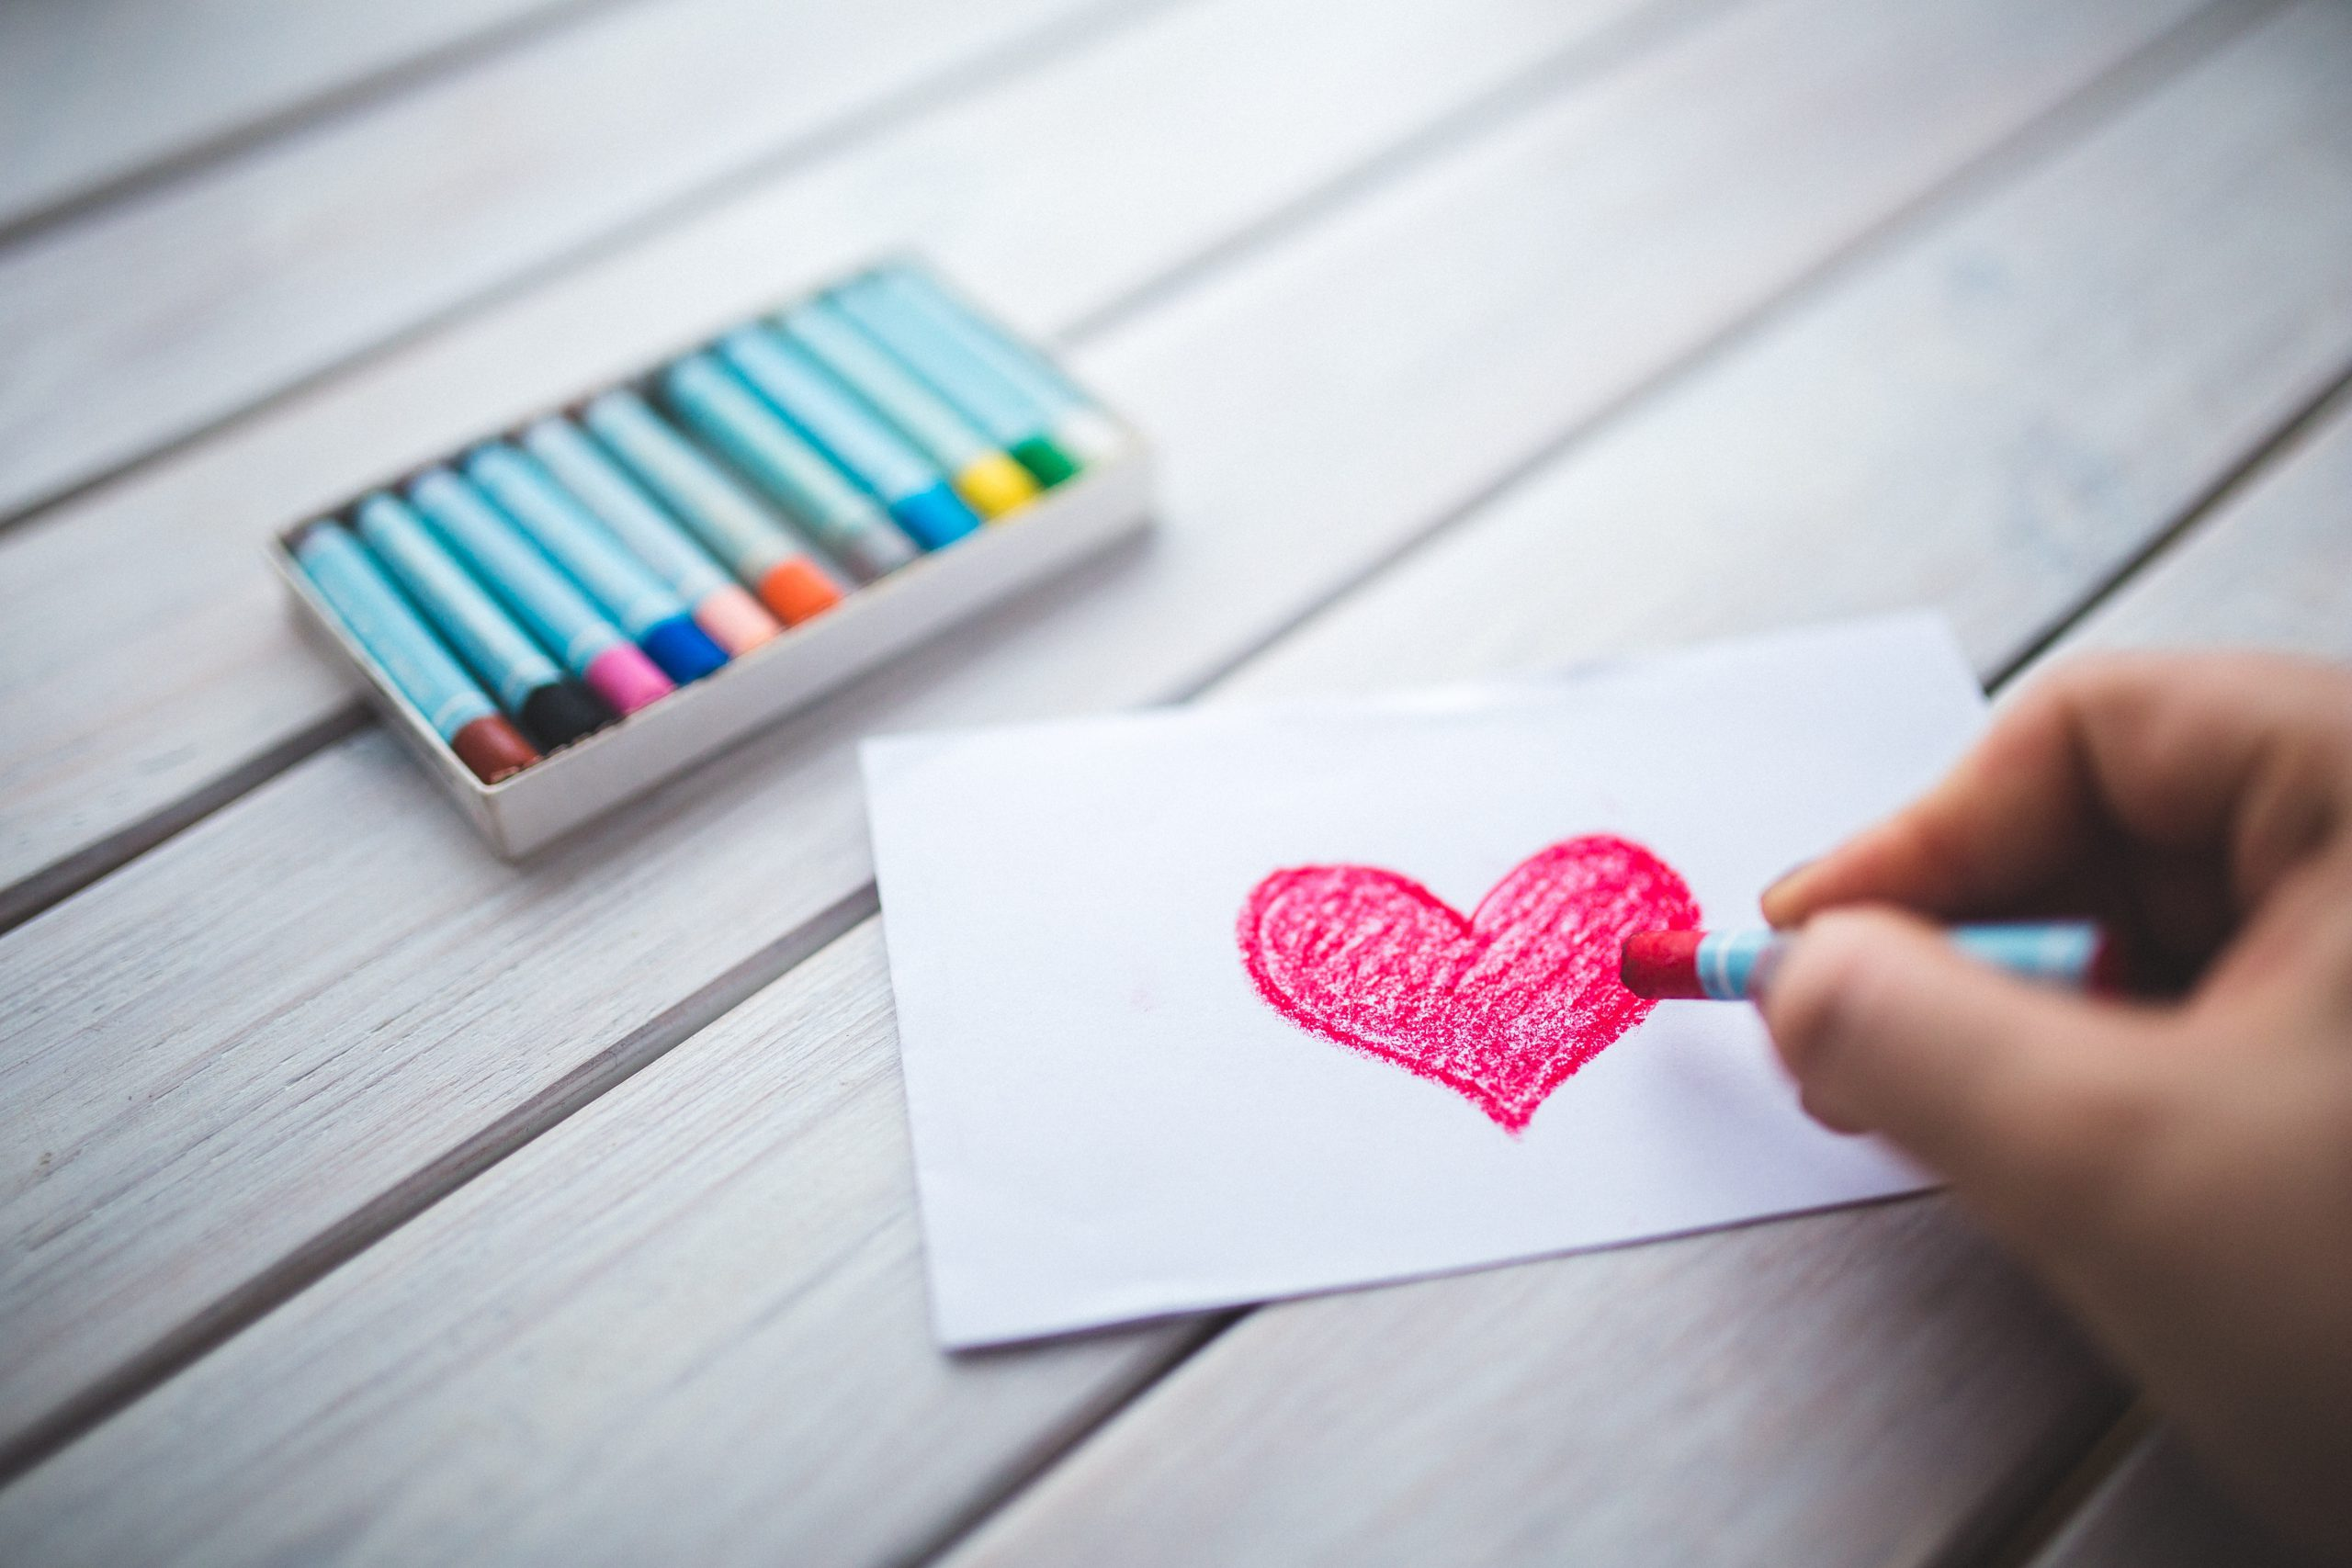 someone's hand drawing a heart on paper